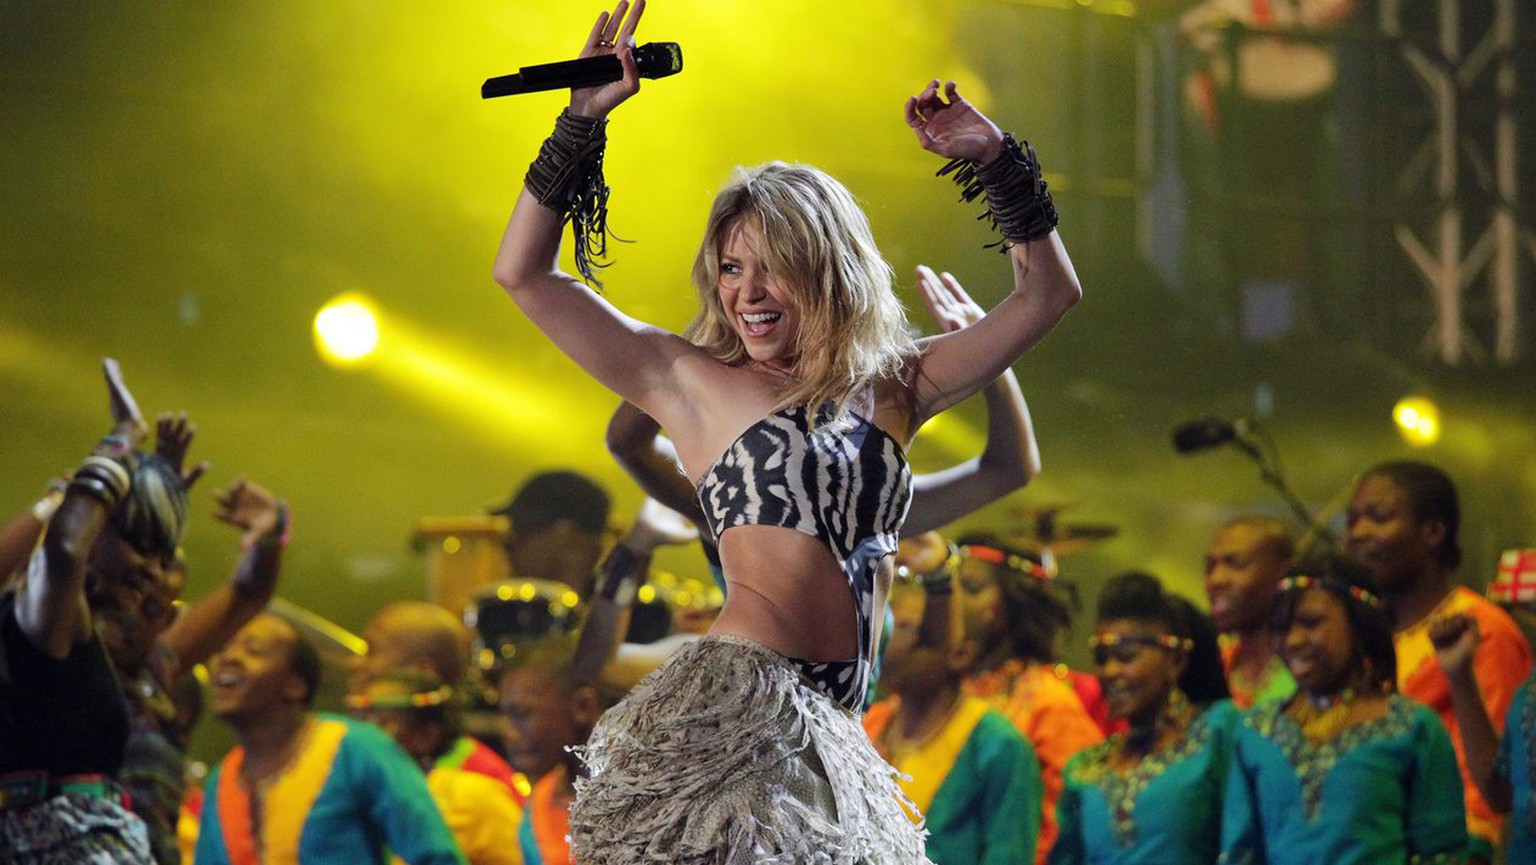 epa02195751 Colombian singer Shakira (C) performs during the FIFA World Cup Kickoff concert at Orlando Stadium in Soweto, Johannesburg, South Africa, 10 June 2010. The FIFA 2010 World Cup is due to kick off in Johannesburg on 11 June.  EPA/JON HRUSA